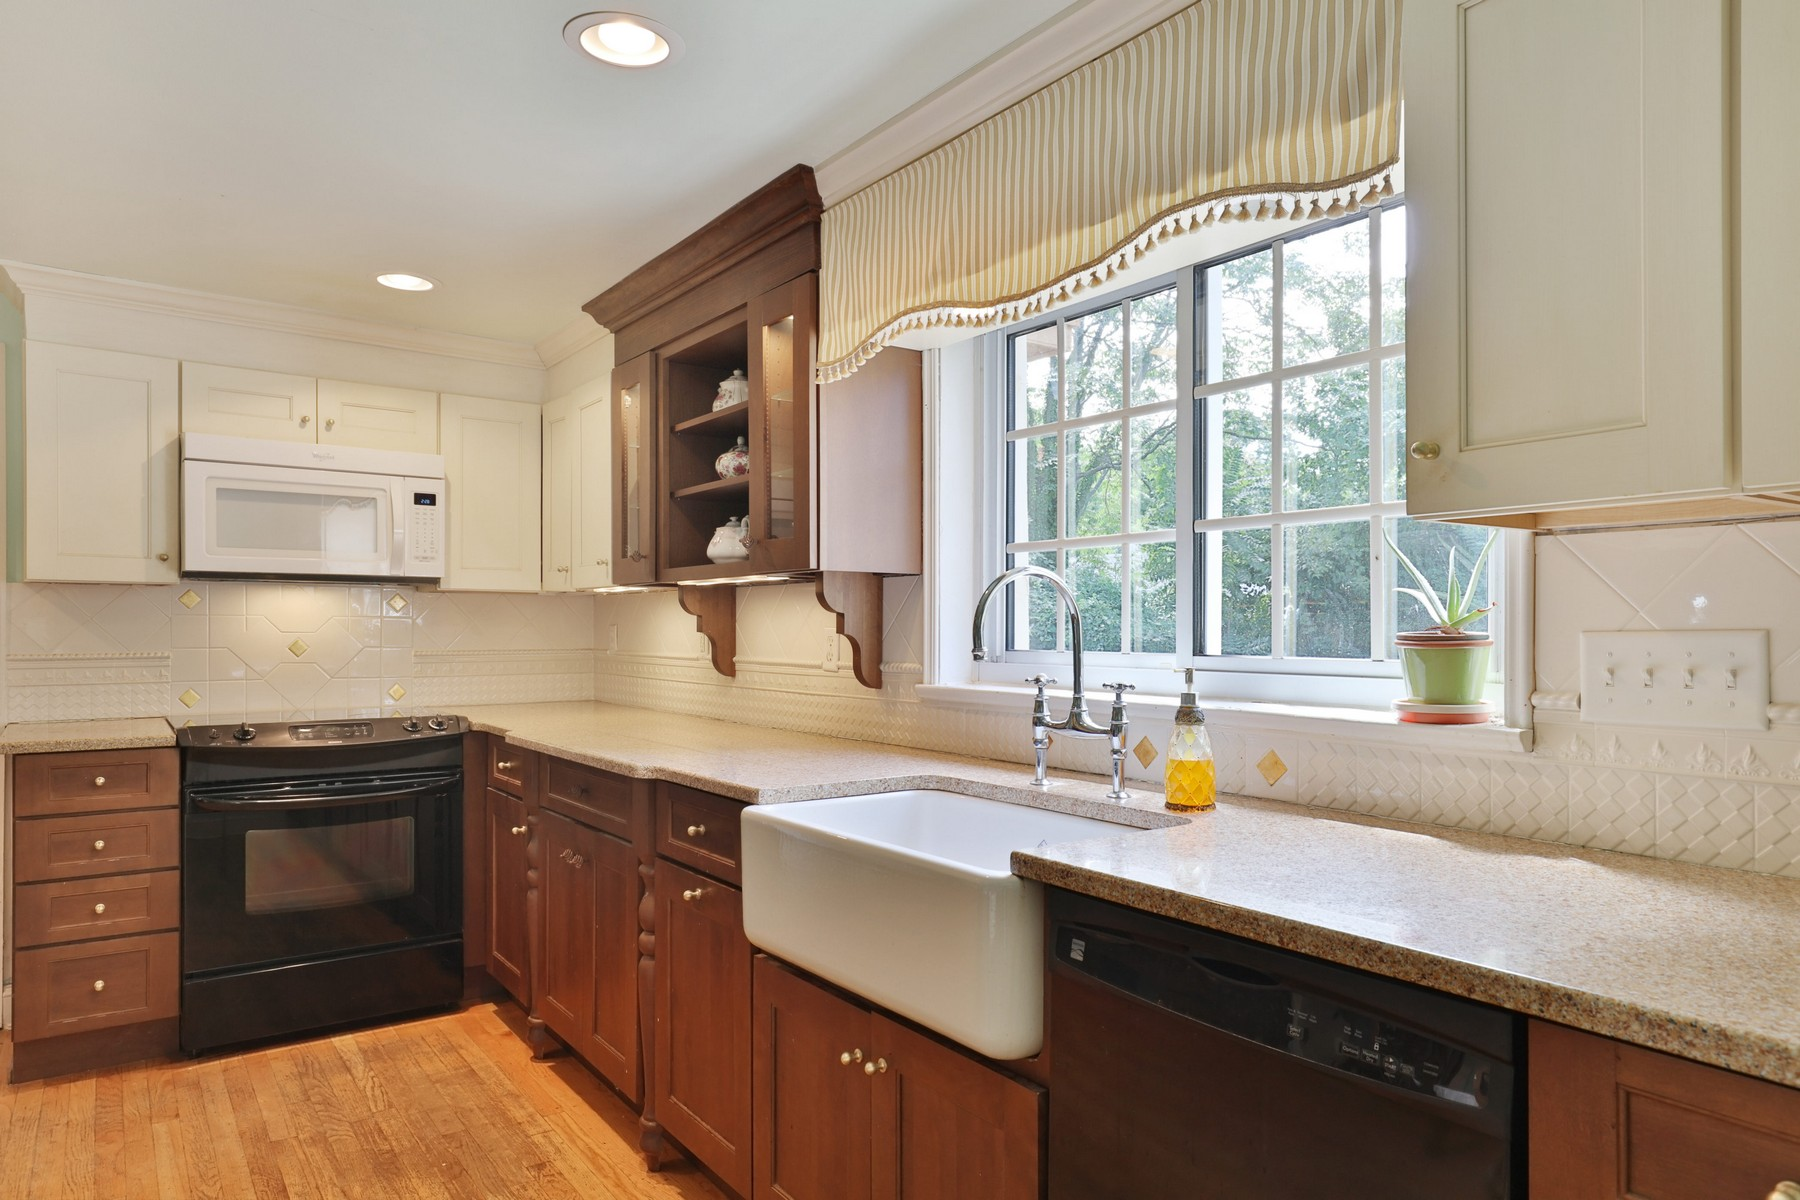 Single Family Home for Sale at Highlands Colonial 1 William St Highlands, 07732 United States